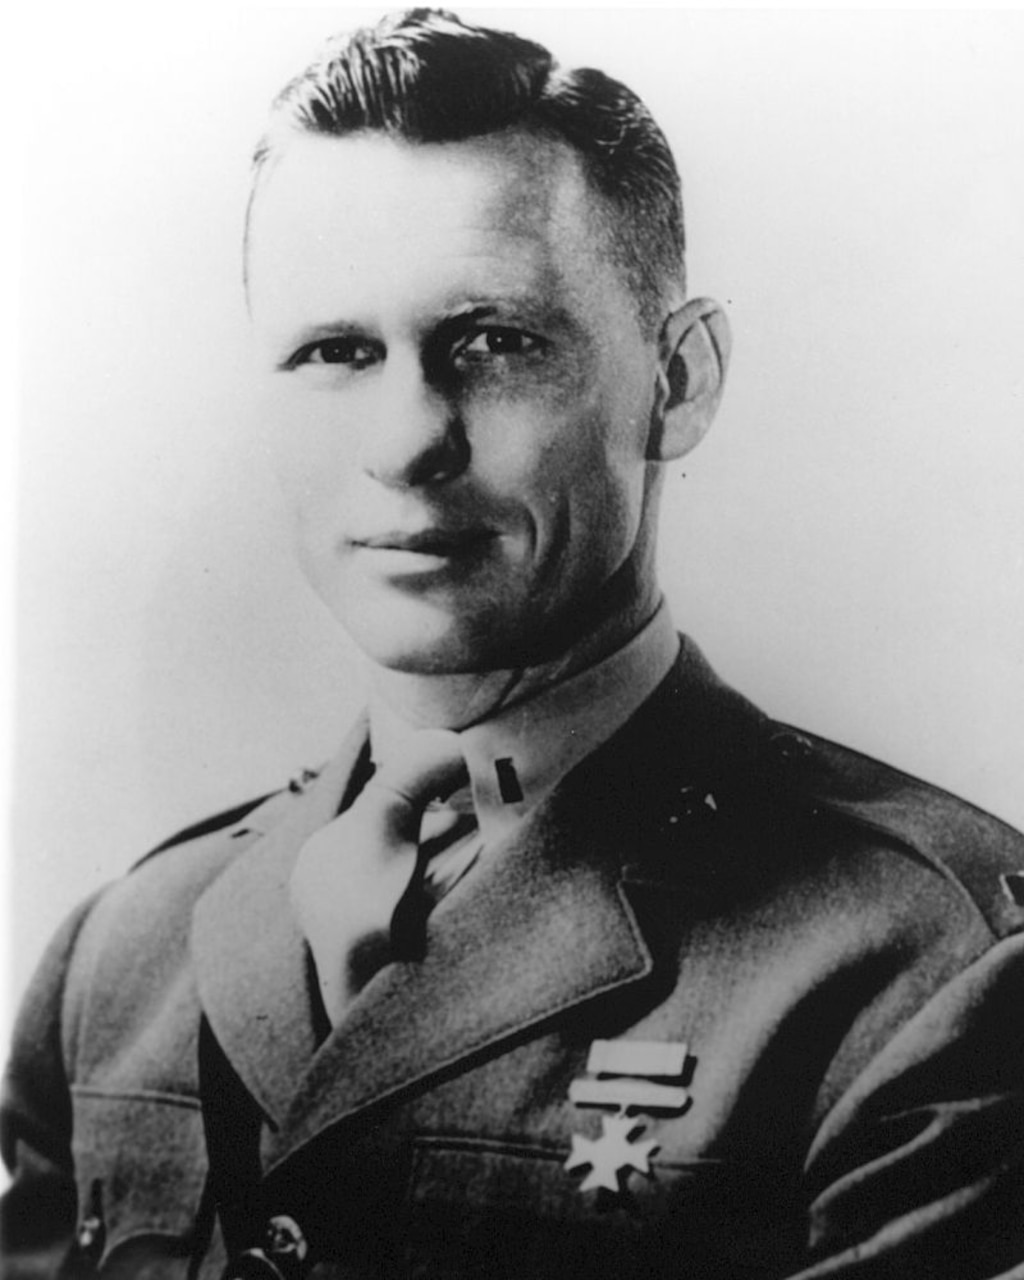 Man in uniform poses for photo.